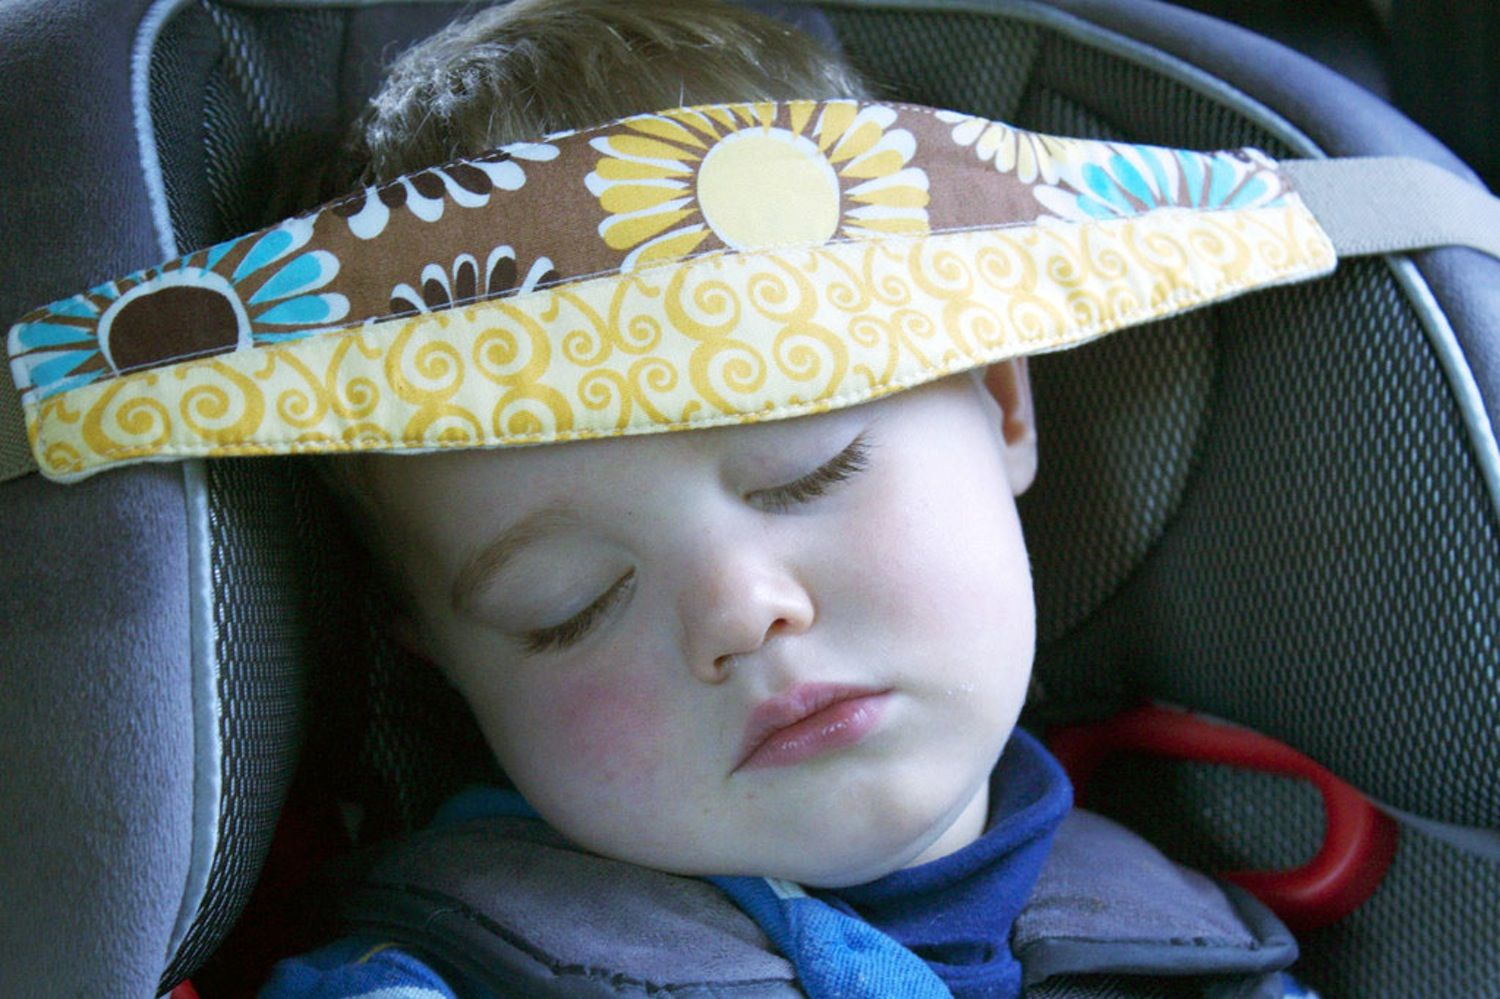 How Do You (Or, Do You?) Keep Your Child's Head Upright